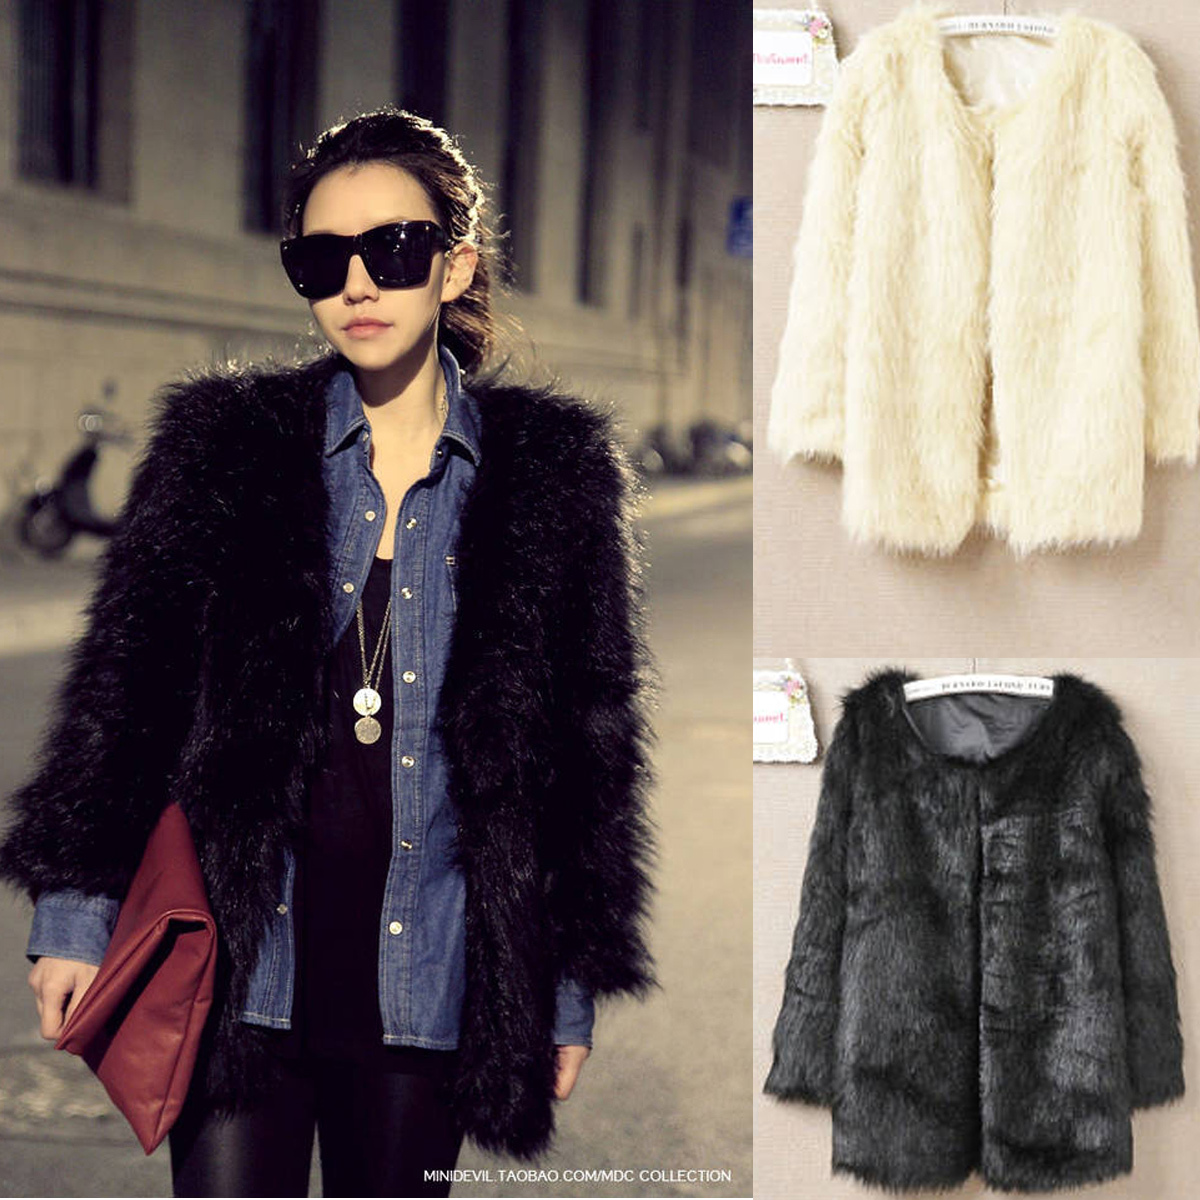 Free Shipping 2012 winter hot selling fur coat medium long Ladies' faux fur overcoat(Beige Black White S/M/L/XL)121009#11-inFur & Faux Fur from Apparel & Accessories on Aliexpress.com